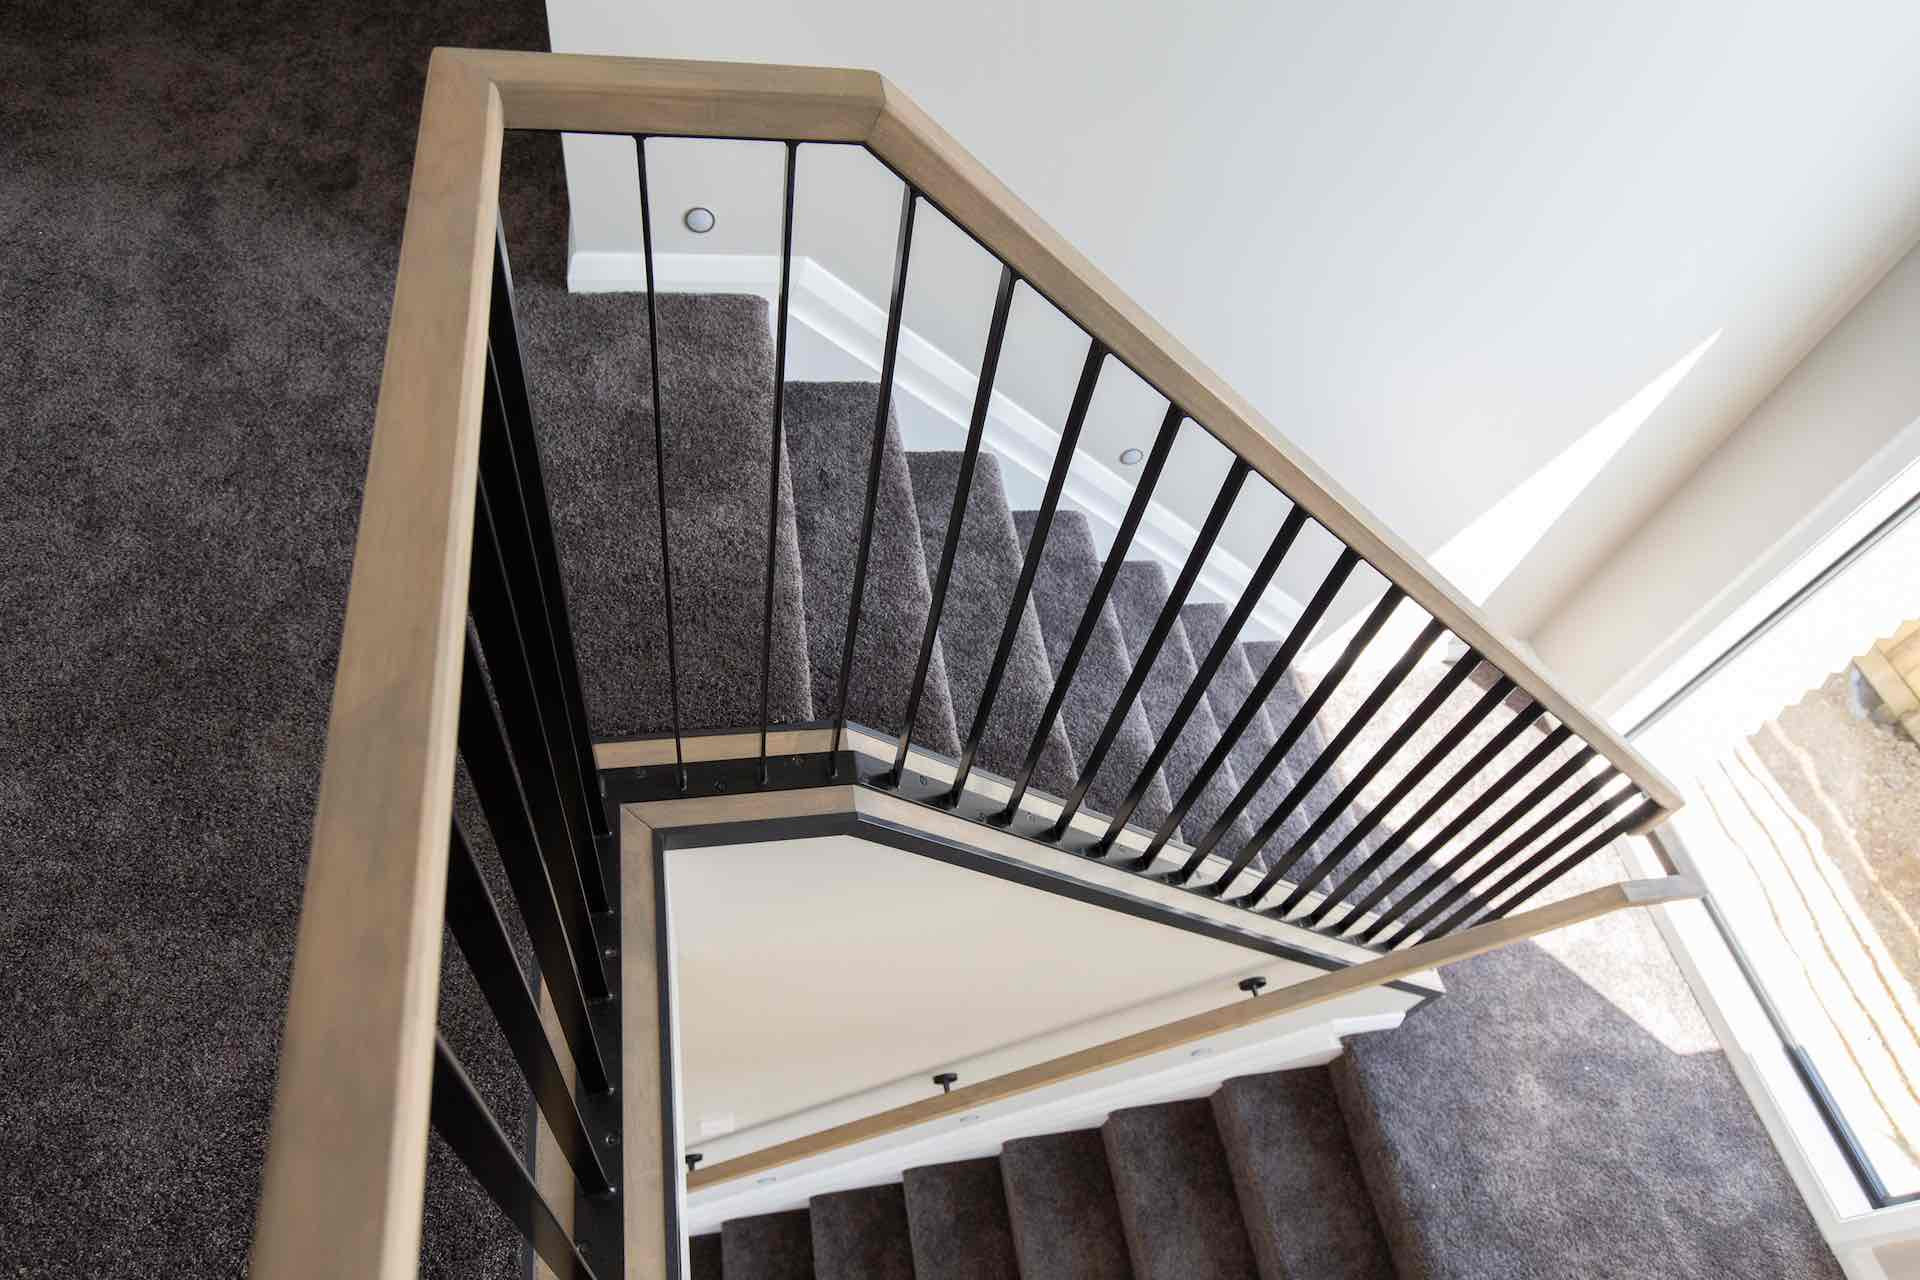 Steel balustrade replacement upgraded these Auckland stairs.